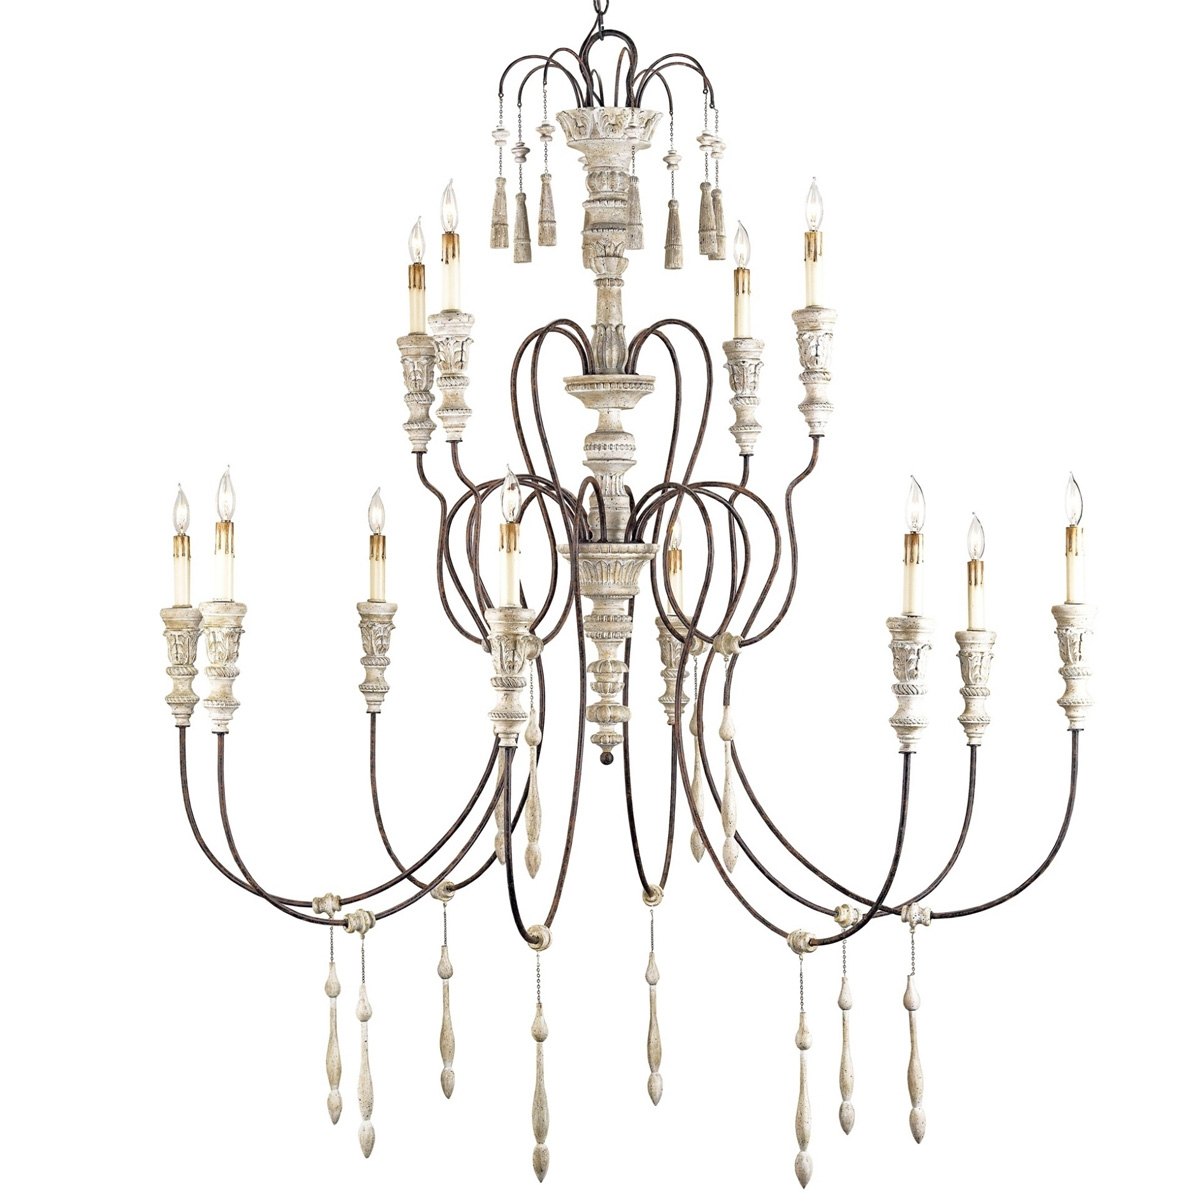 Large French Shab Chic Chandelier Throughout Country Chic Chandelier (Image 10 of 15)